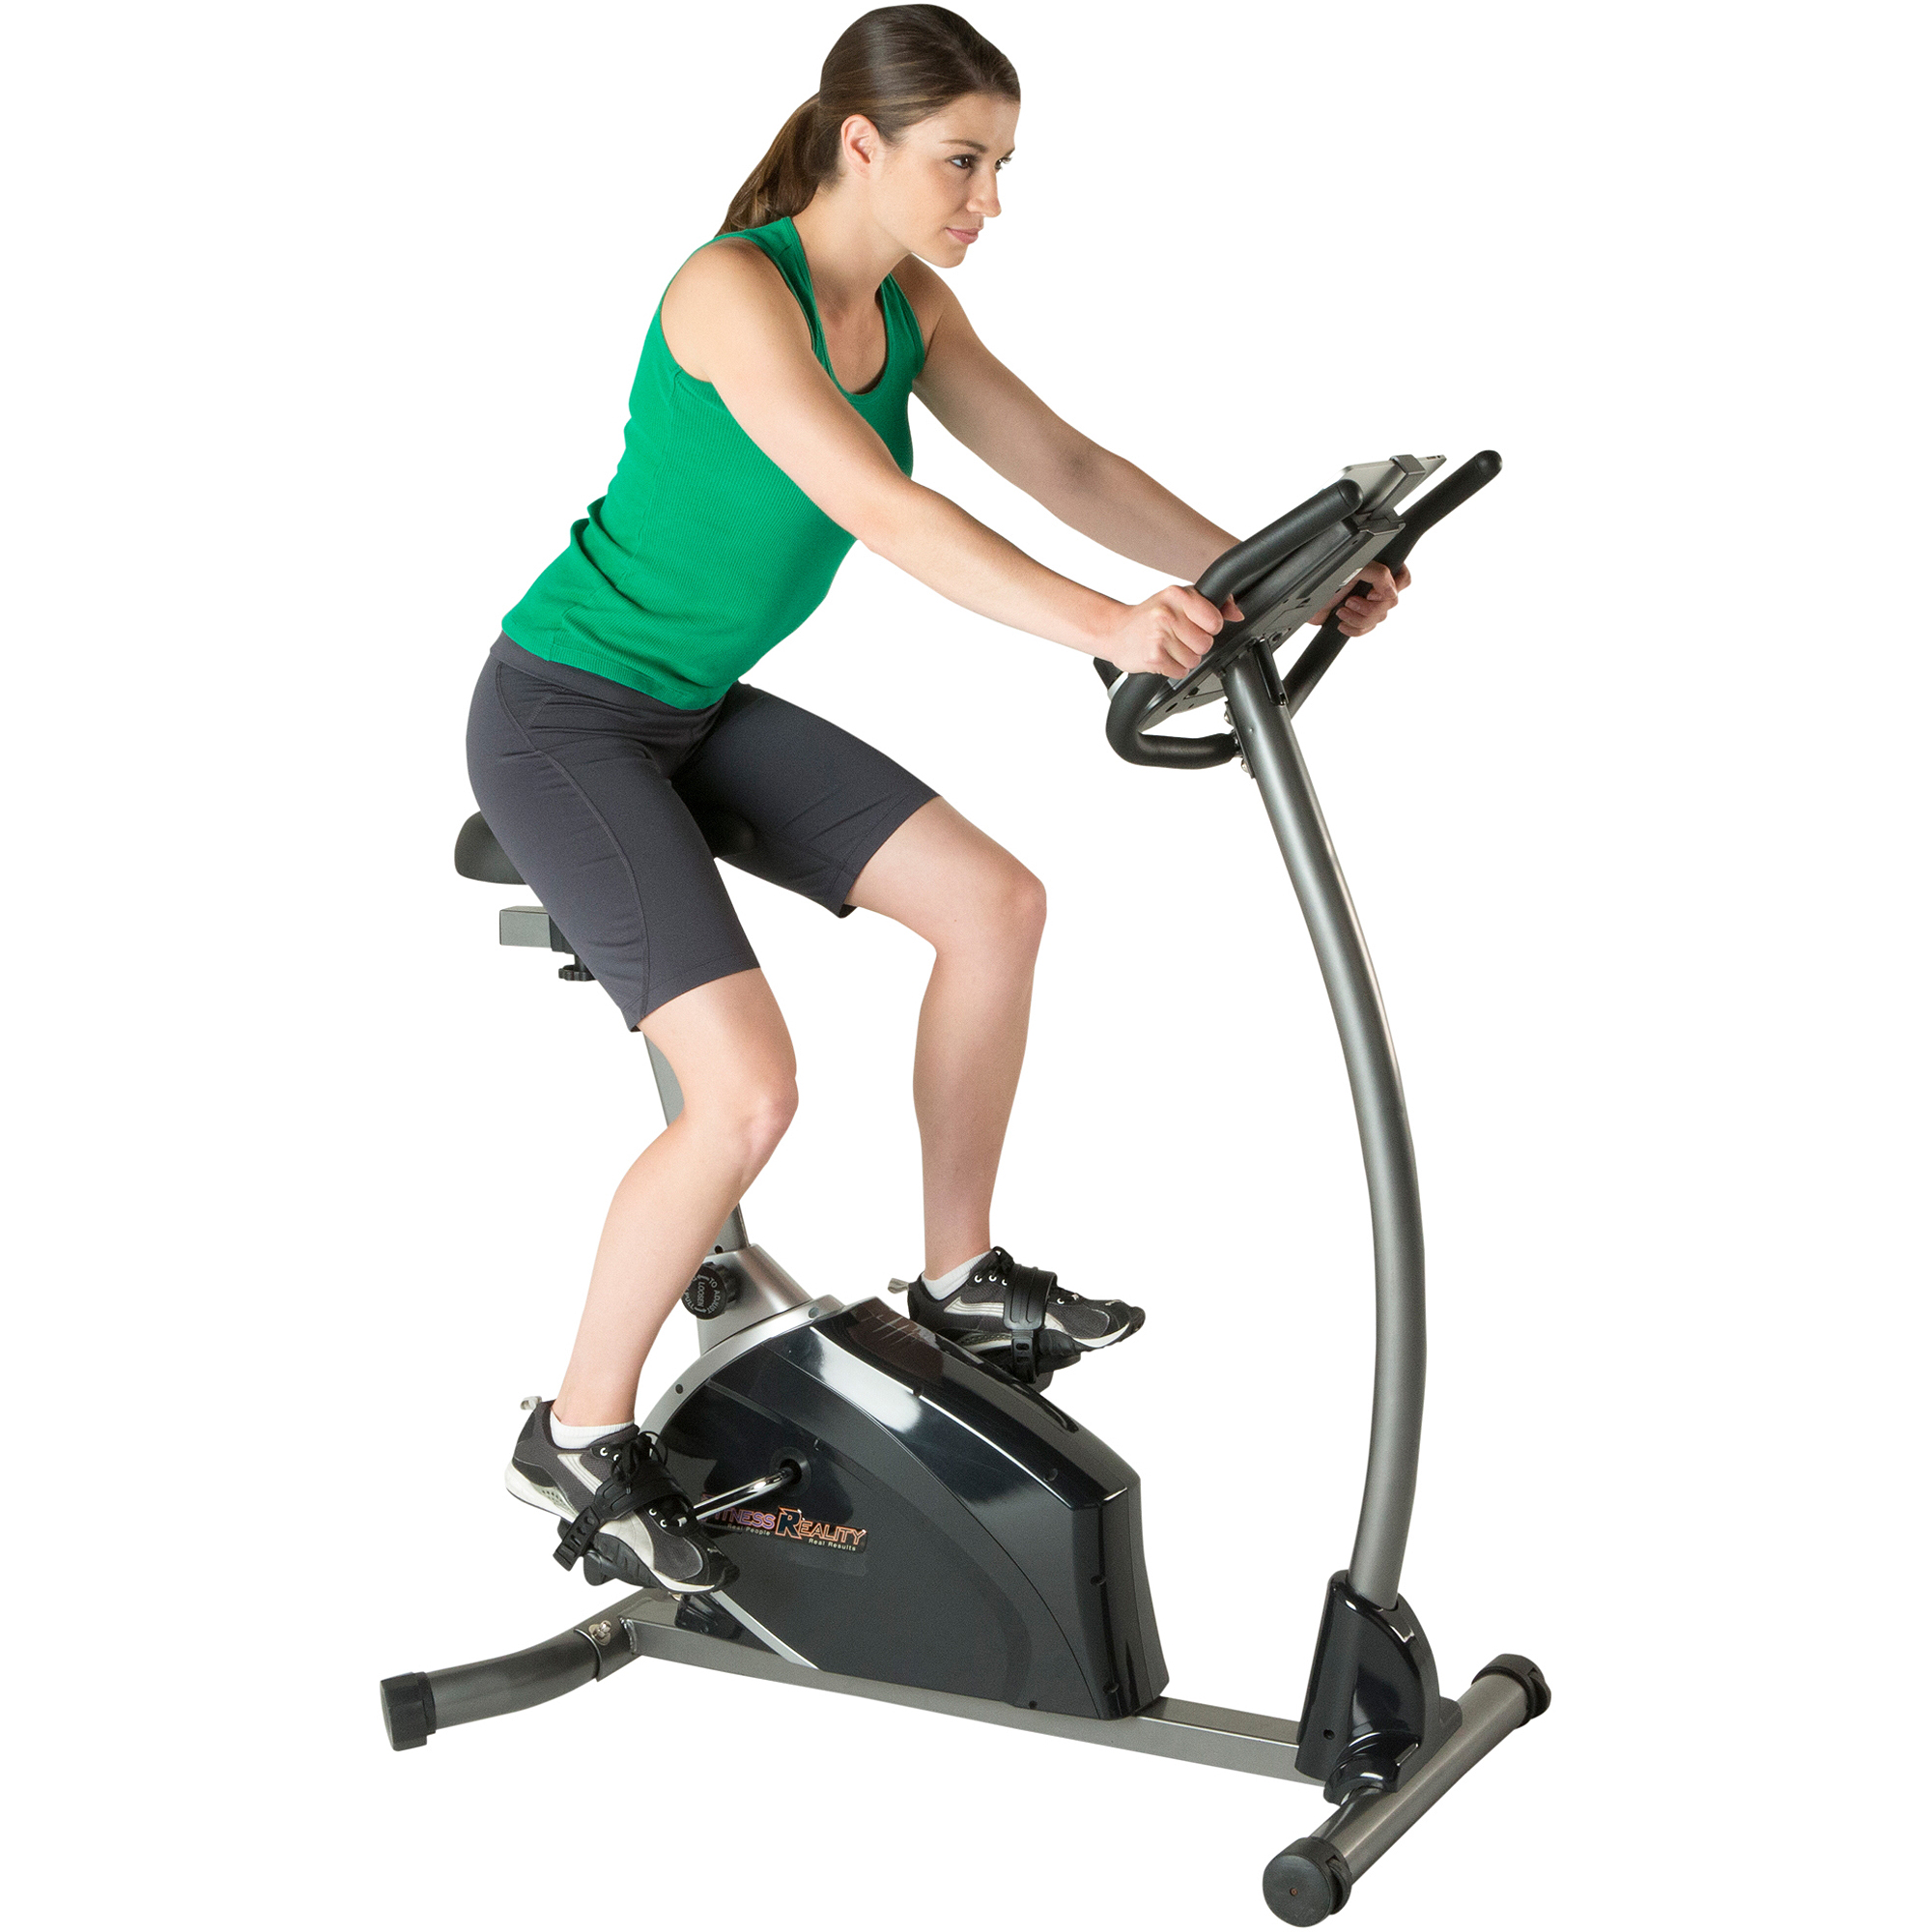 Fitness Reality U3500 Magnetic Resistance Upright Exercise Bike with Extended Seat Design, Book, iPad Holder with Heart Rate Control